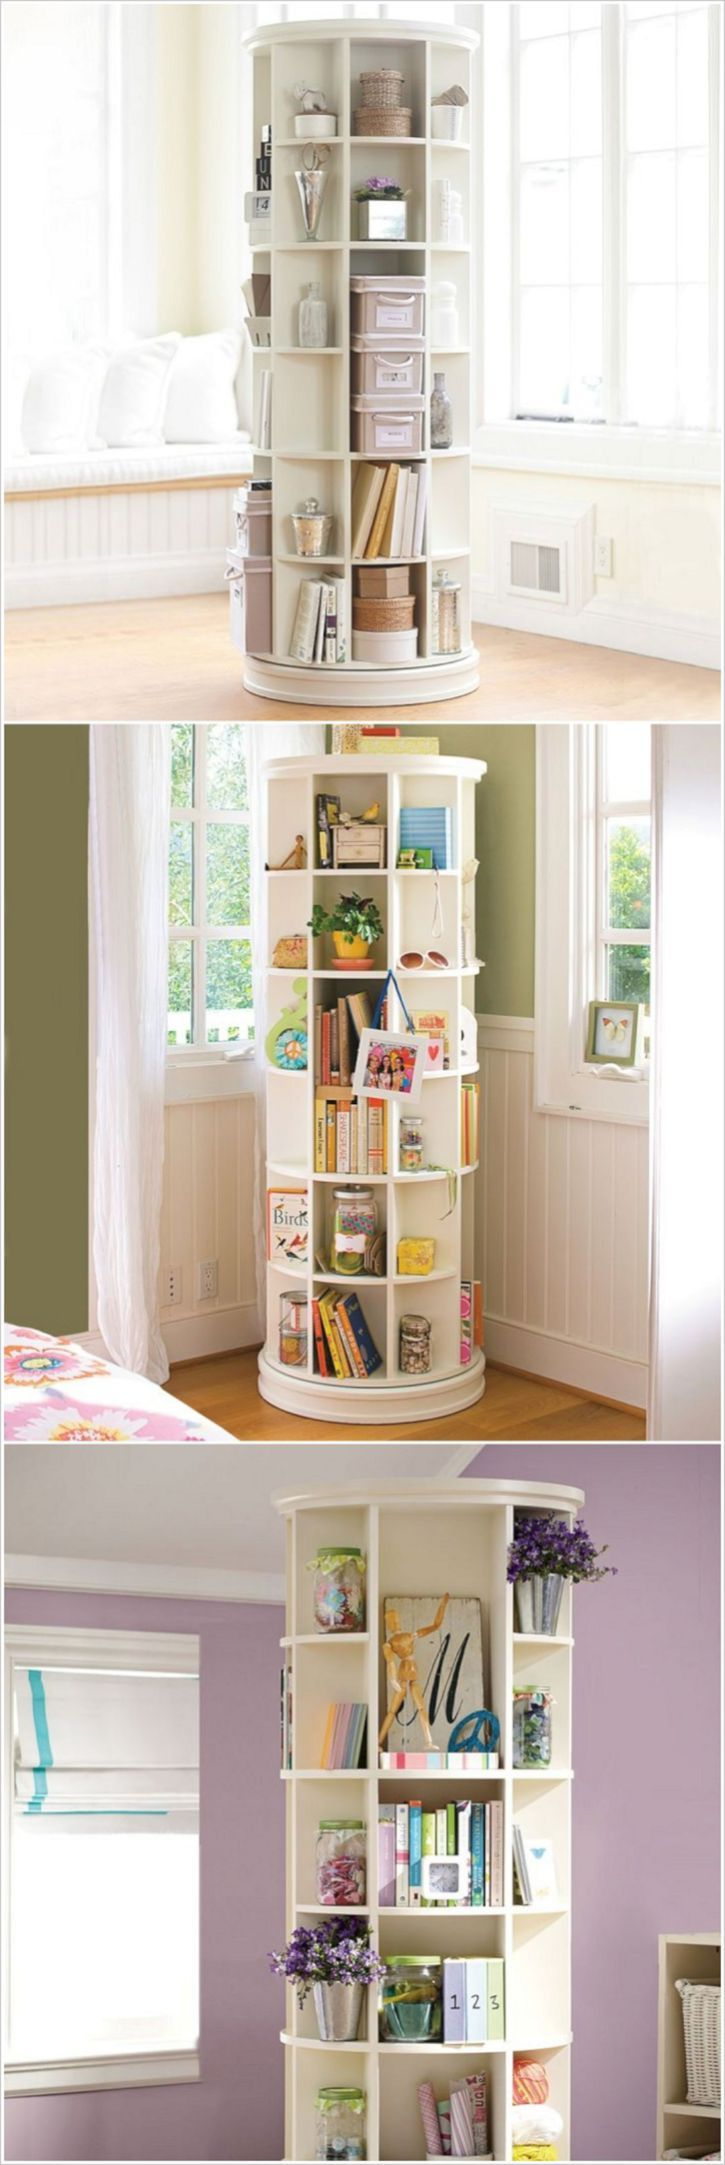 The Best Bedroom Storage Ideas For Small Room Spaces No 15